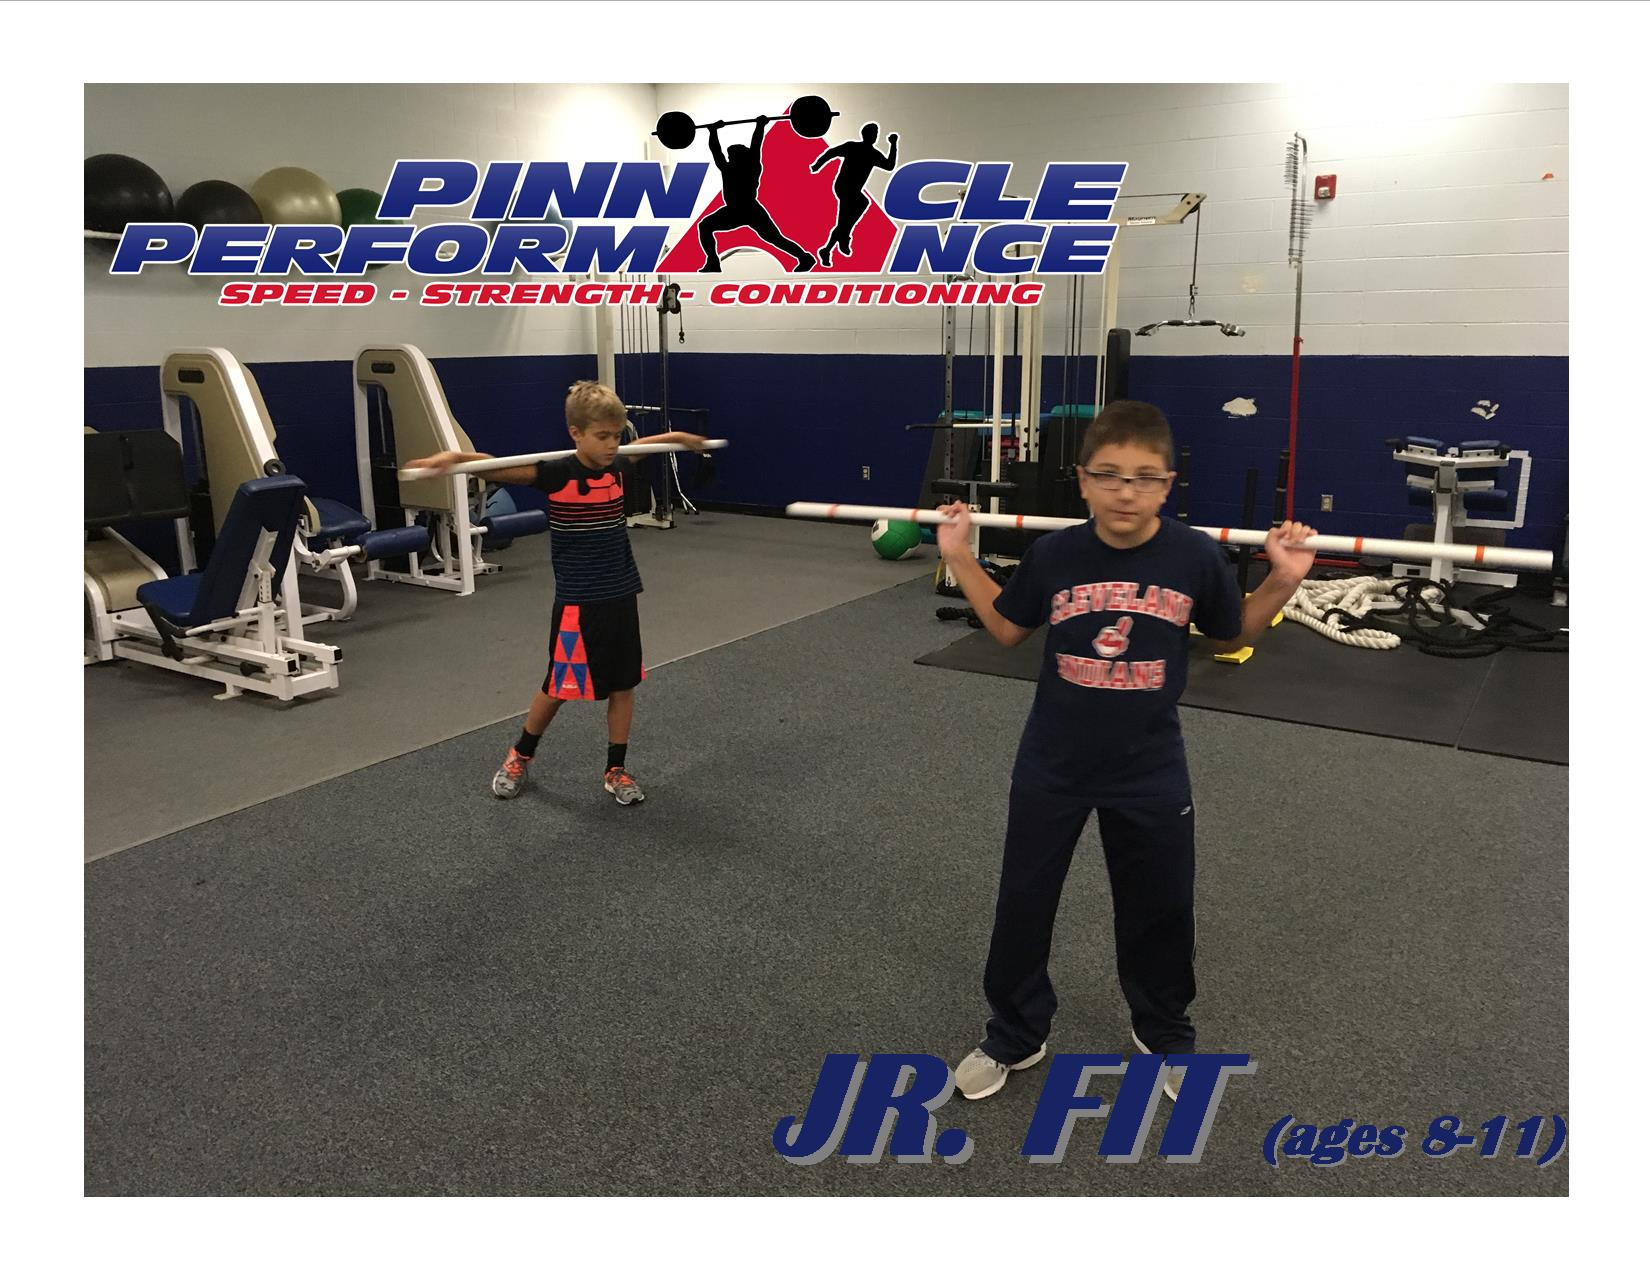 youth fitness, fitness training, strength training, pinnacle performance, pinnacle sports, medina, ohio